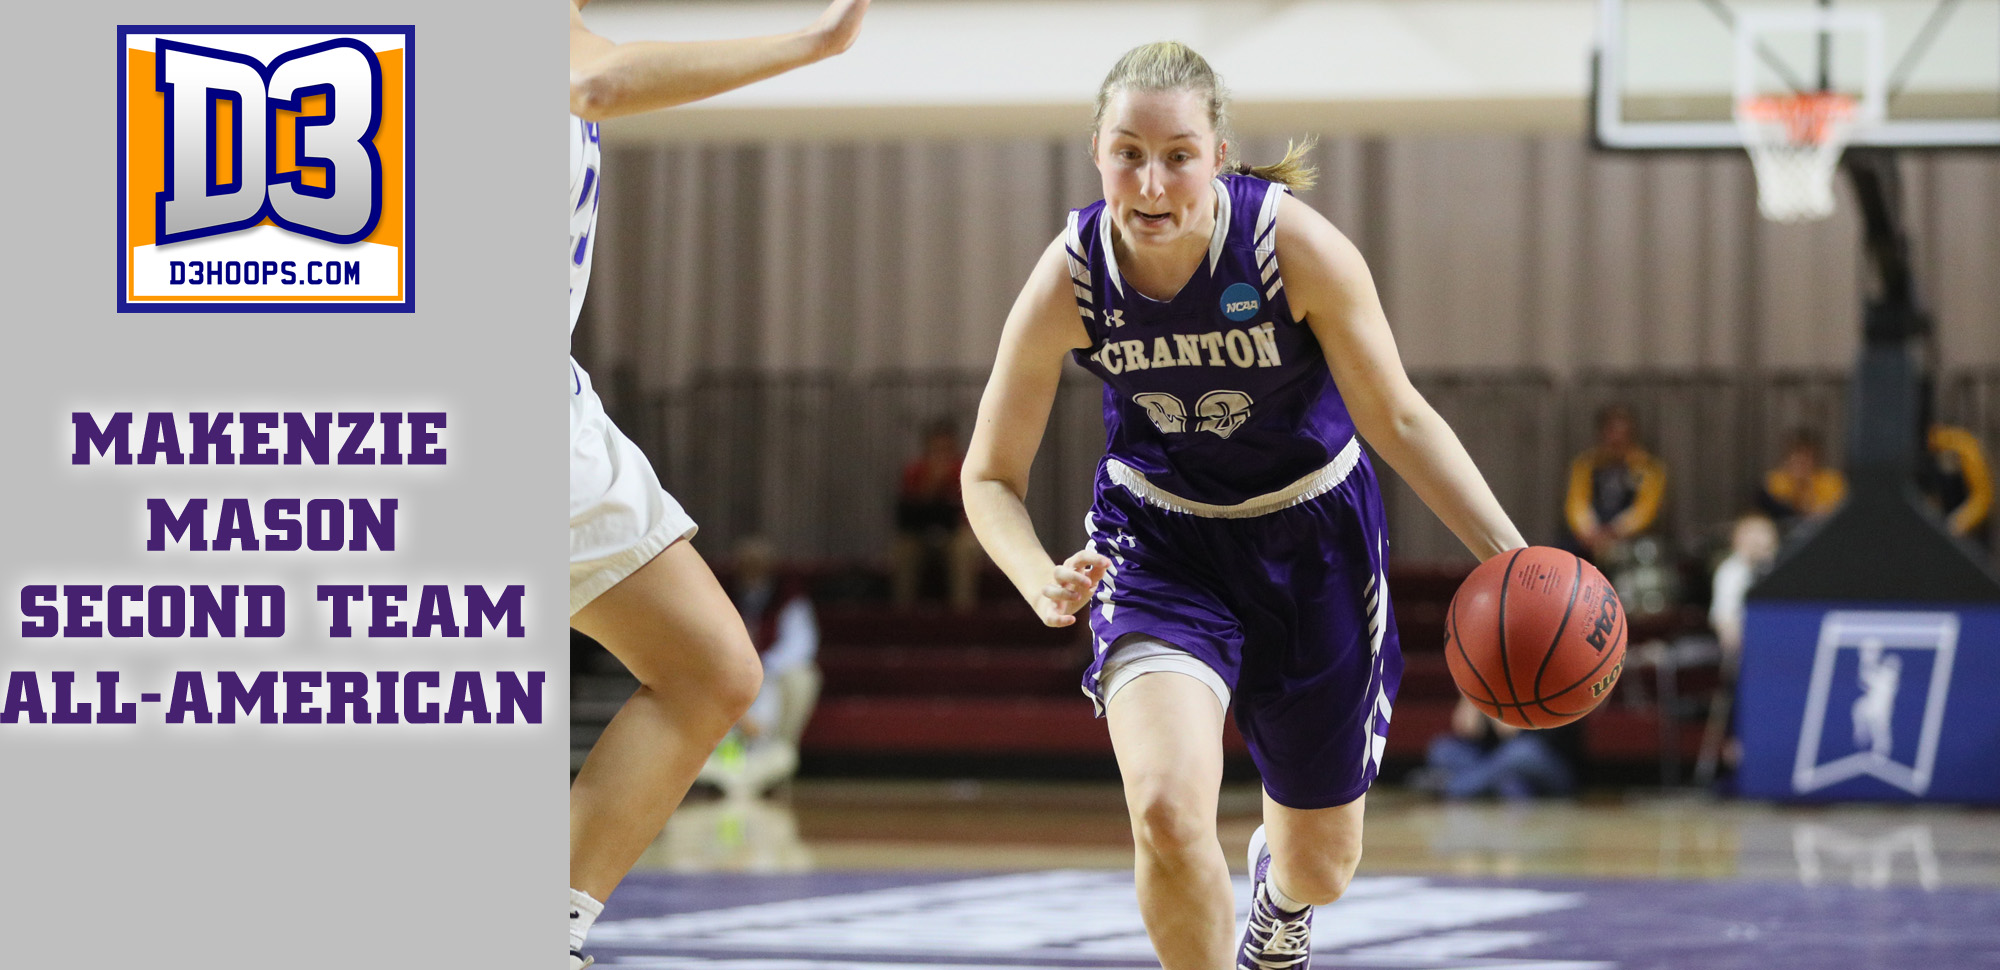 Junior guard Makenzie Mason was named Second Team All-American by D3hoops.com on Saturday night.